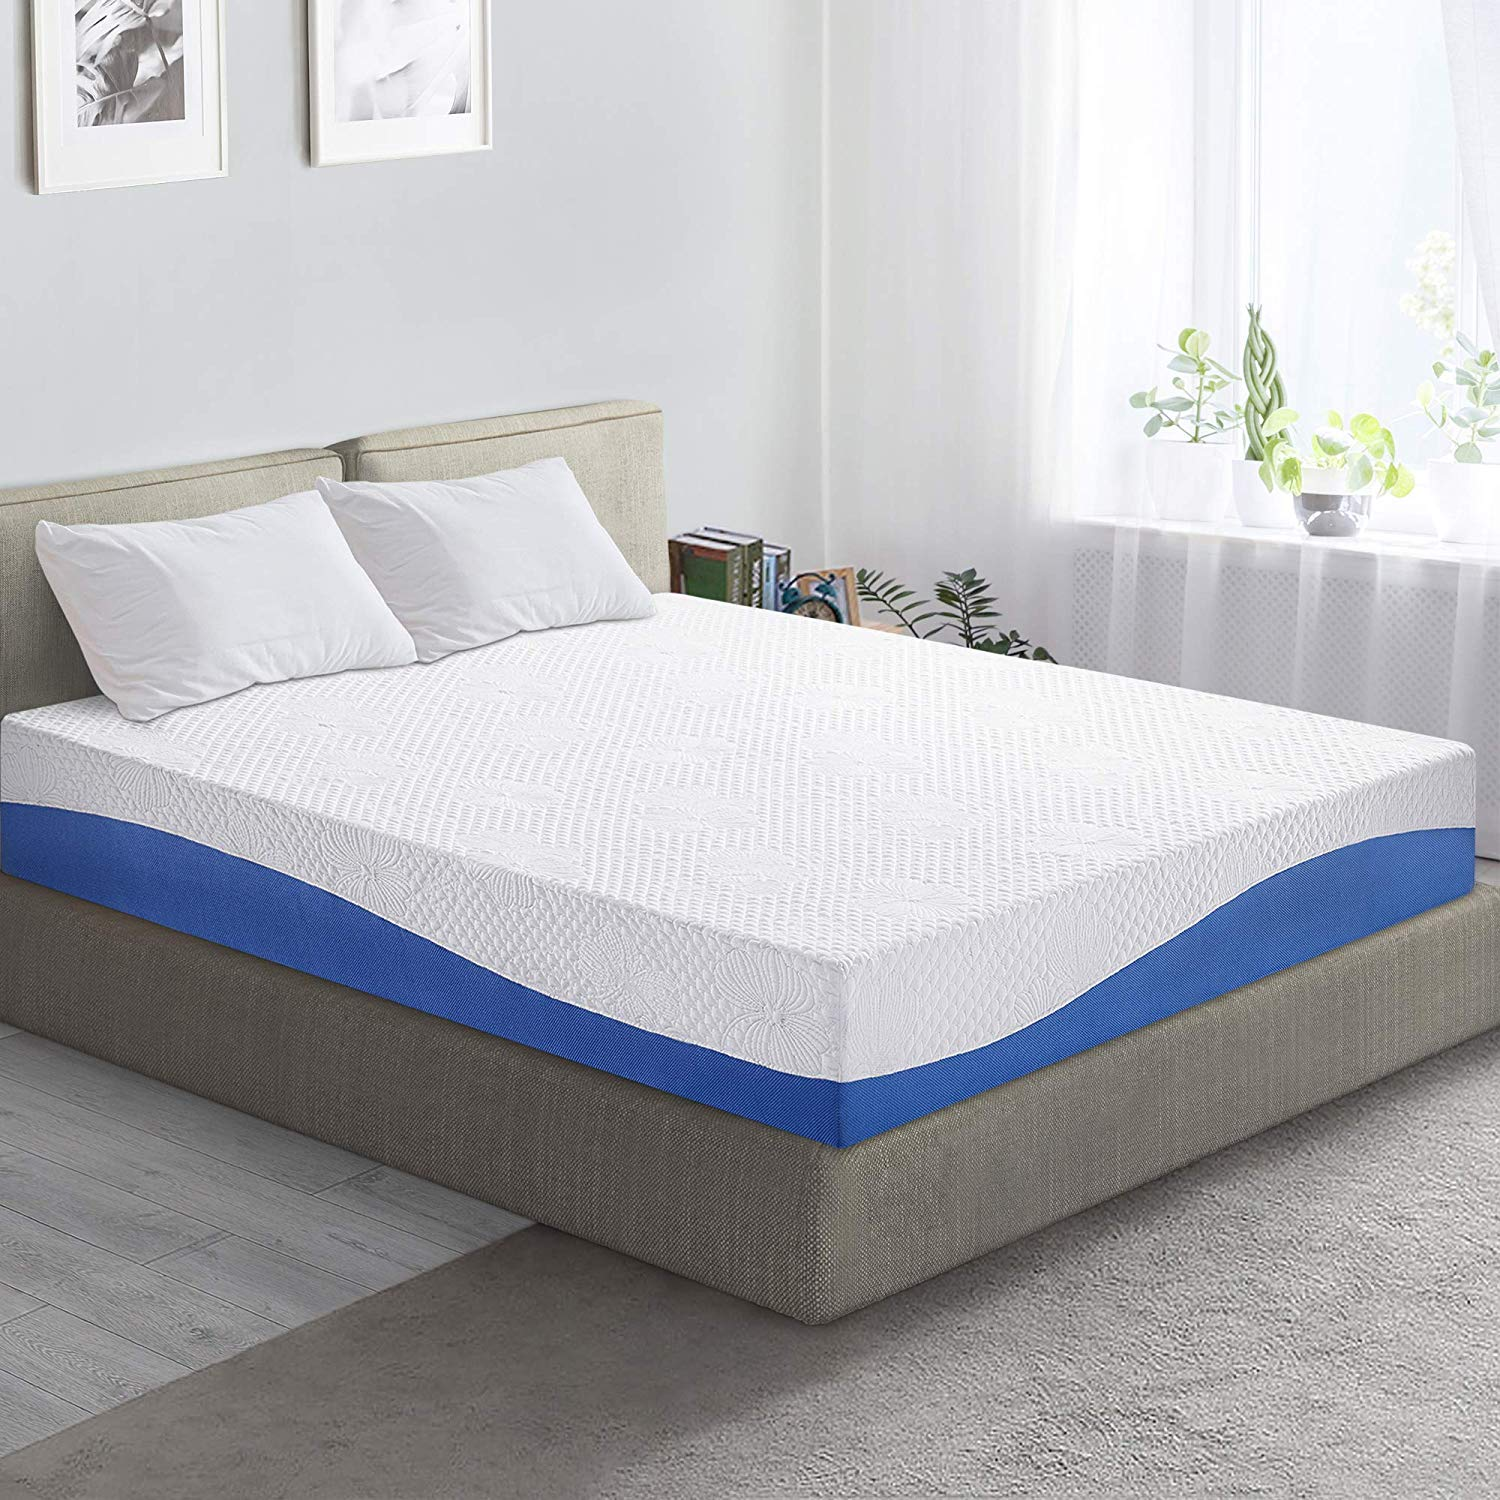 Best Mattress Under $200 – Review & Buying Guide